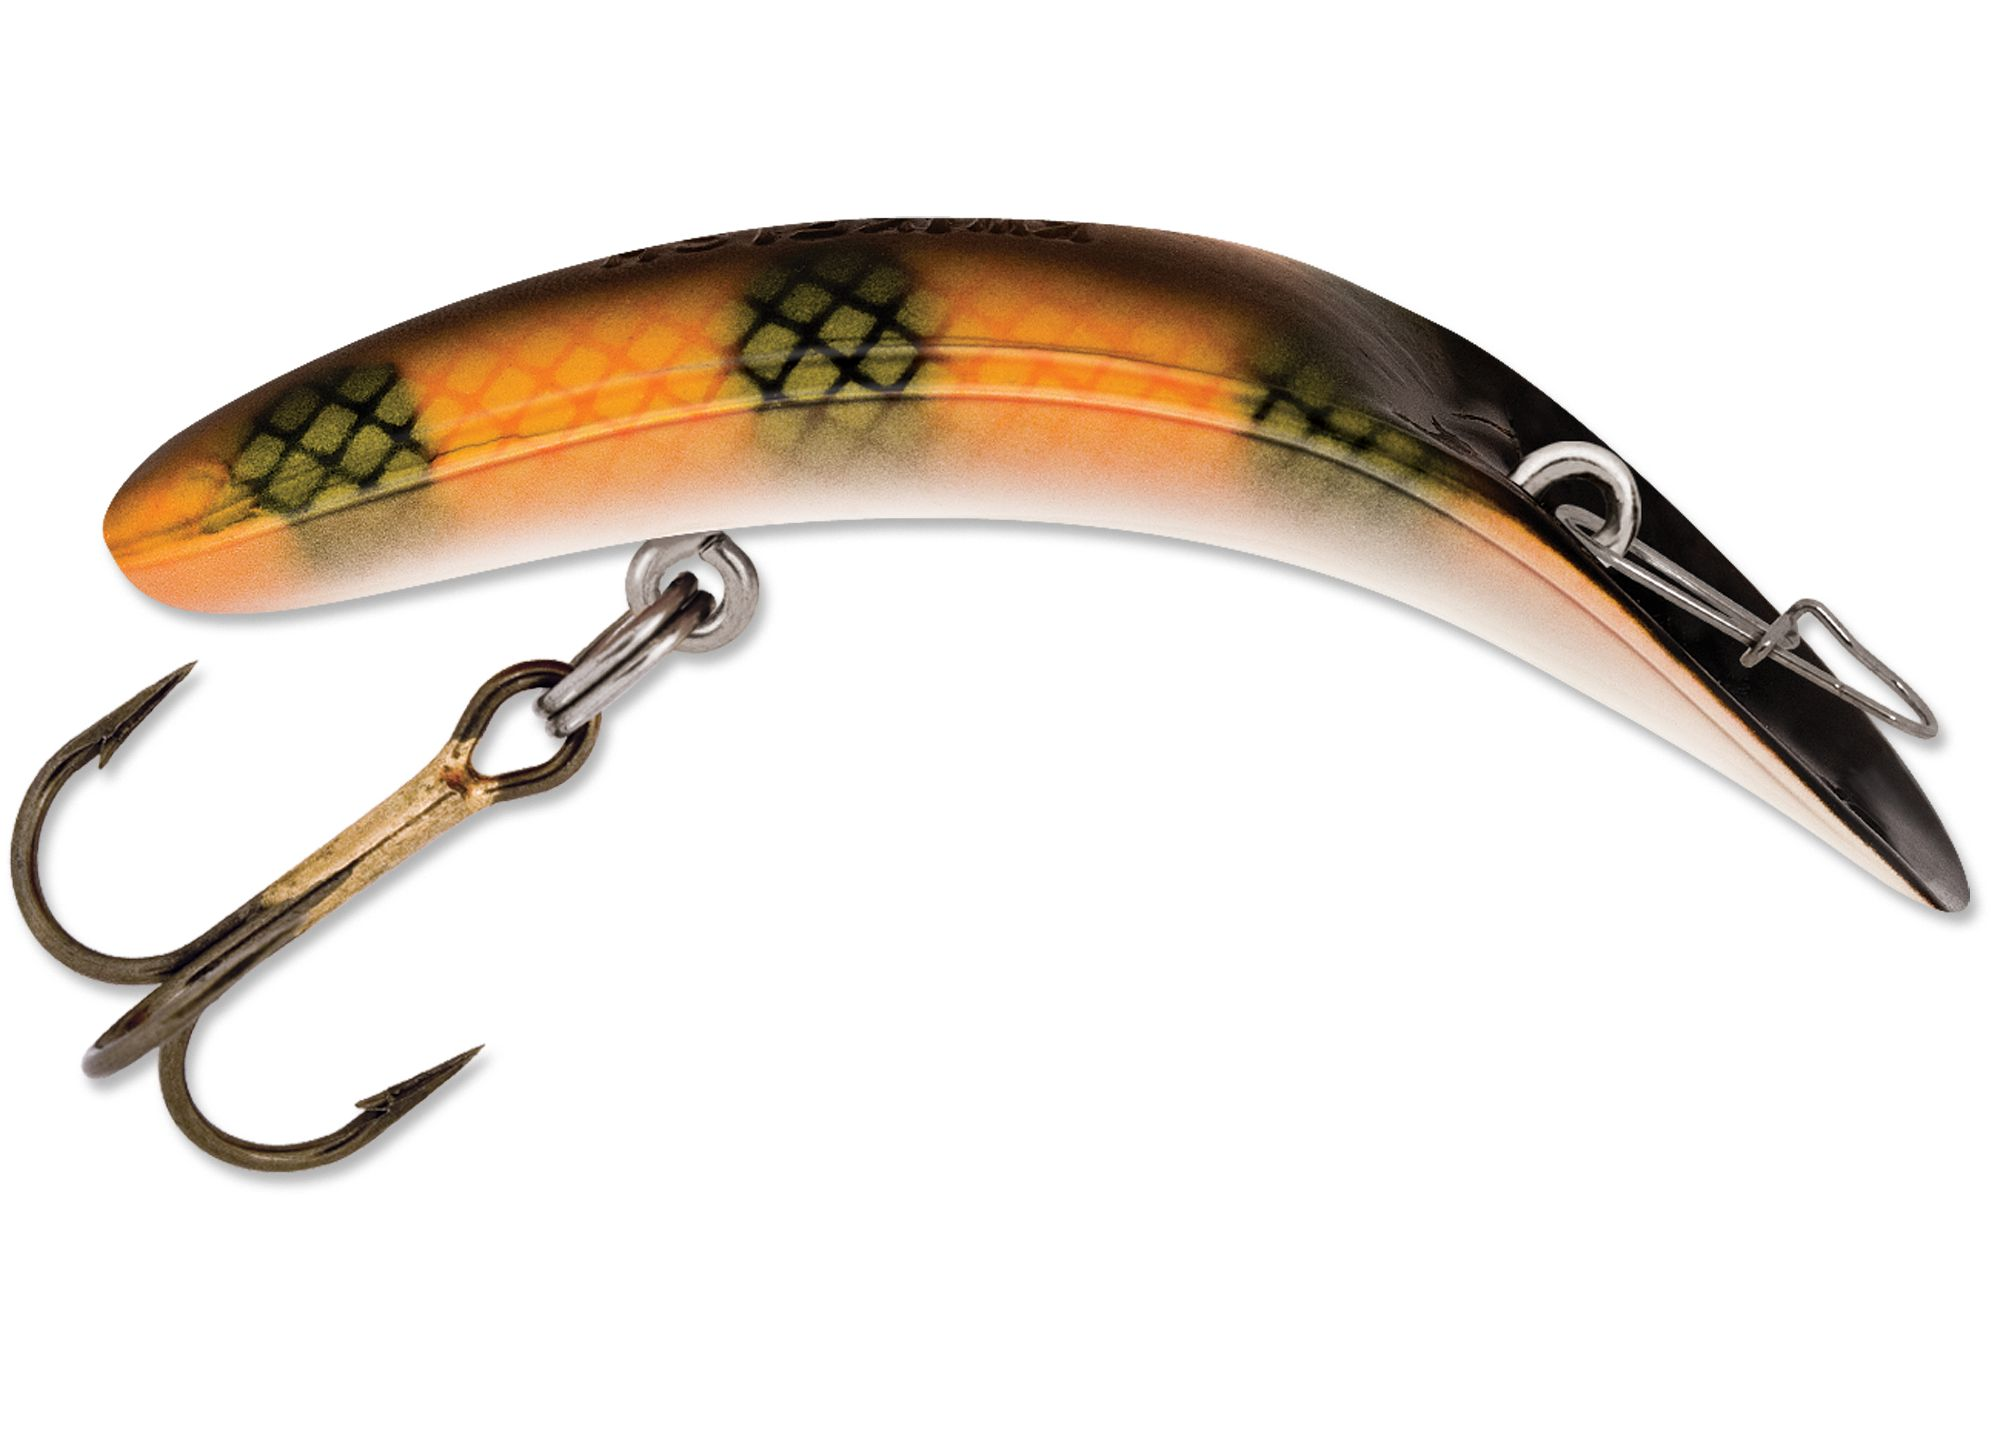 KWIKFISH (NON-RATTLE) 5413-005 BARRED PERCH SCALE